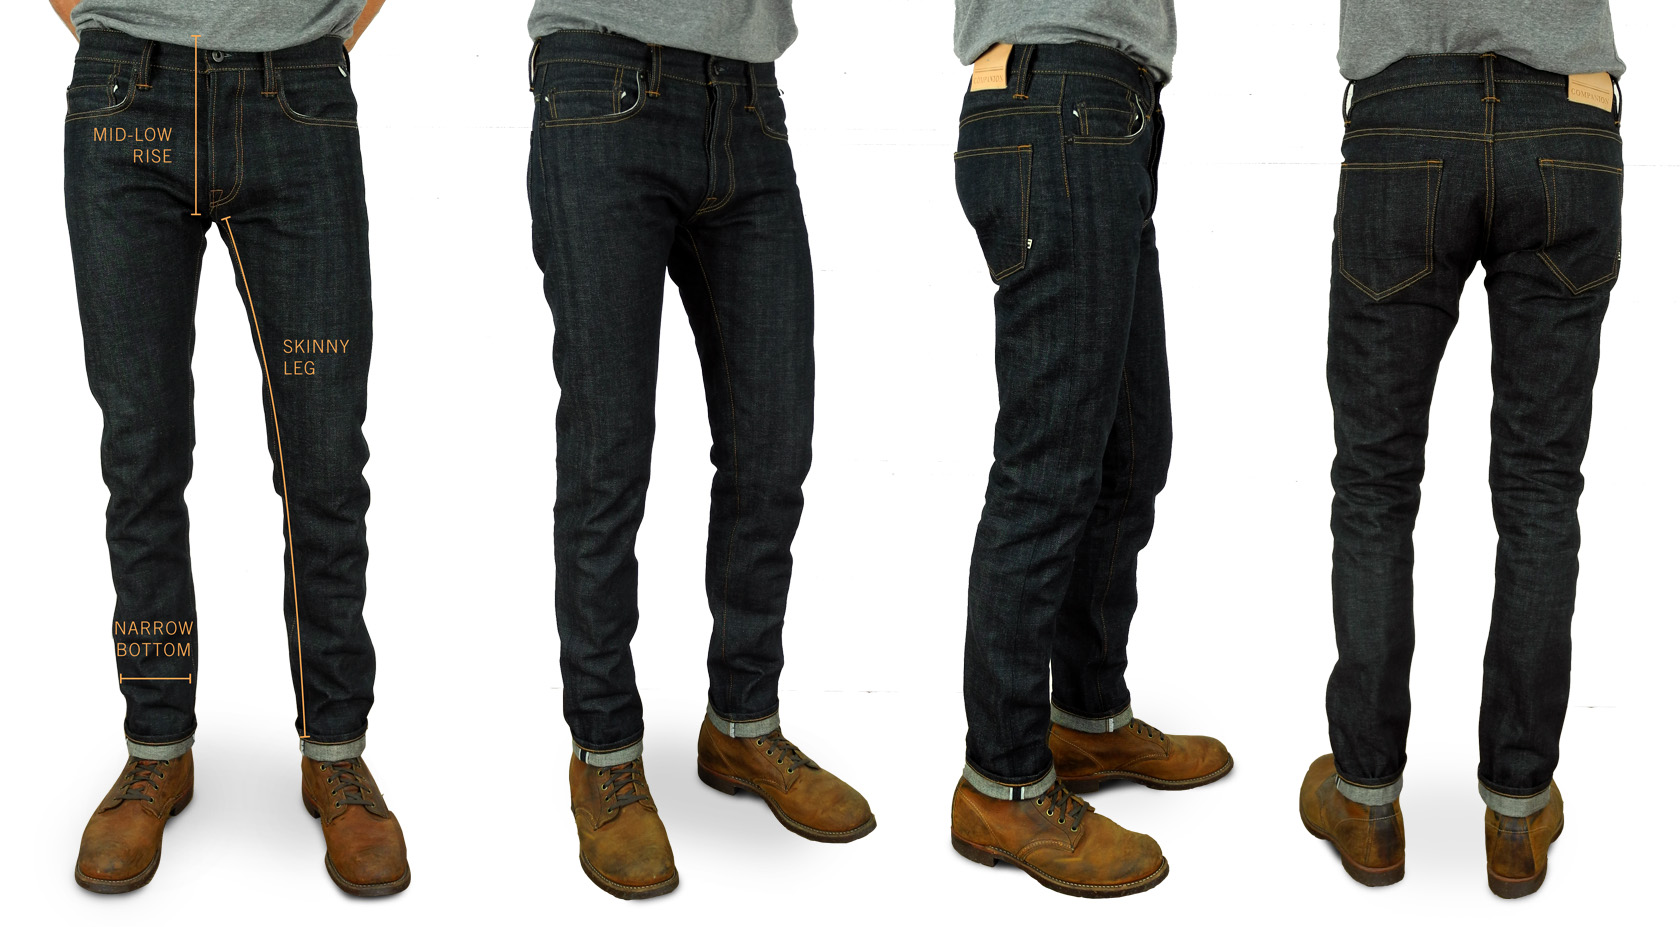 Companion Denim Slimmer Hug fit raw selvedge denim fits